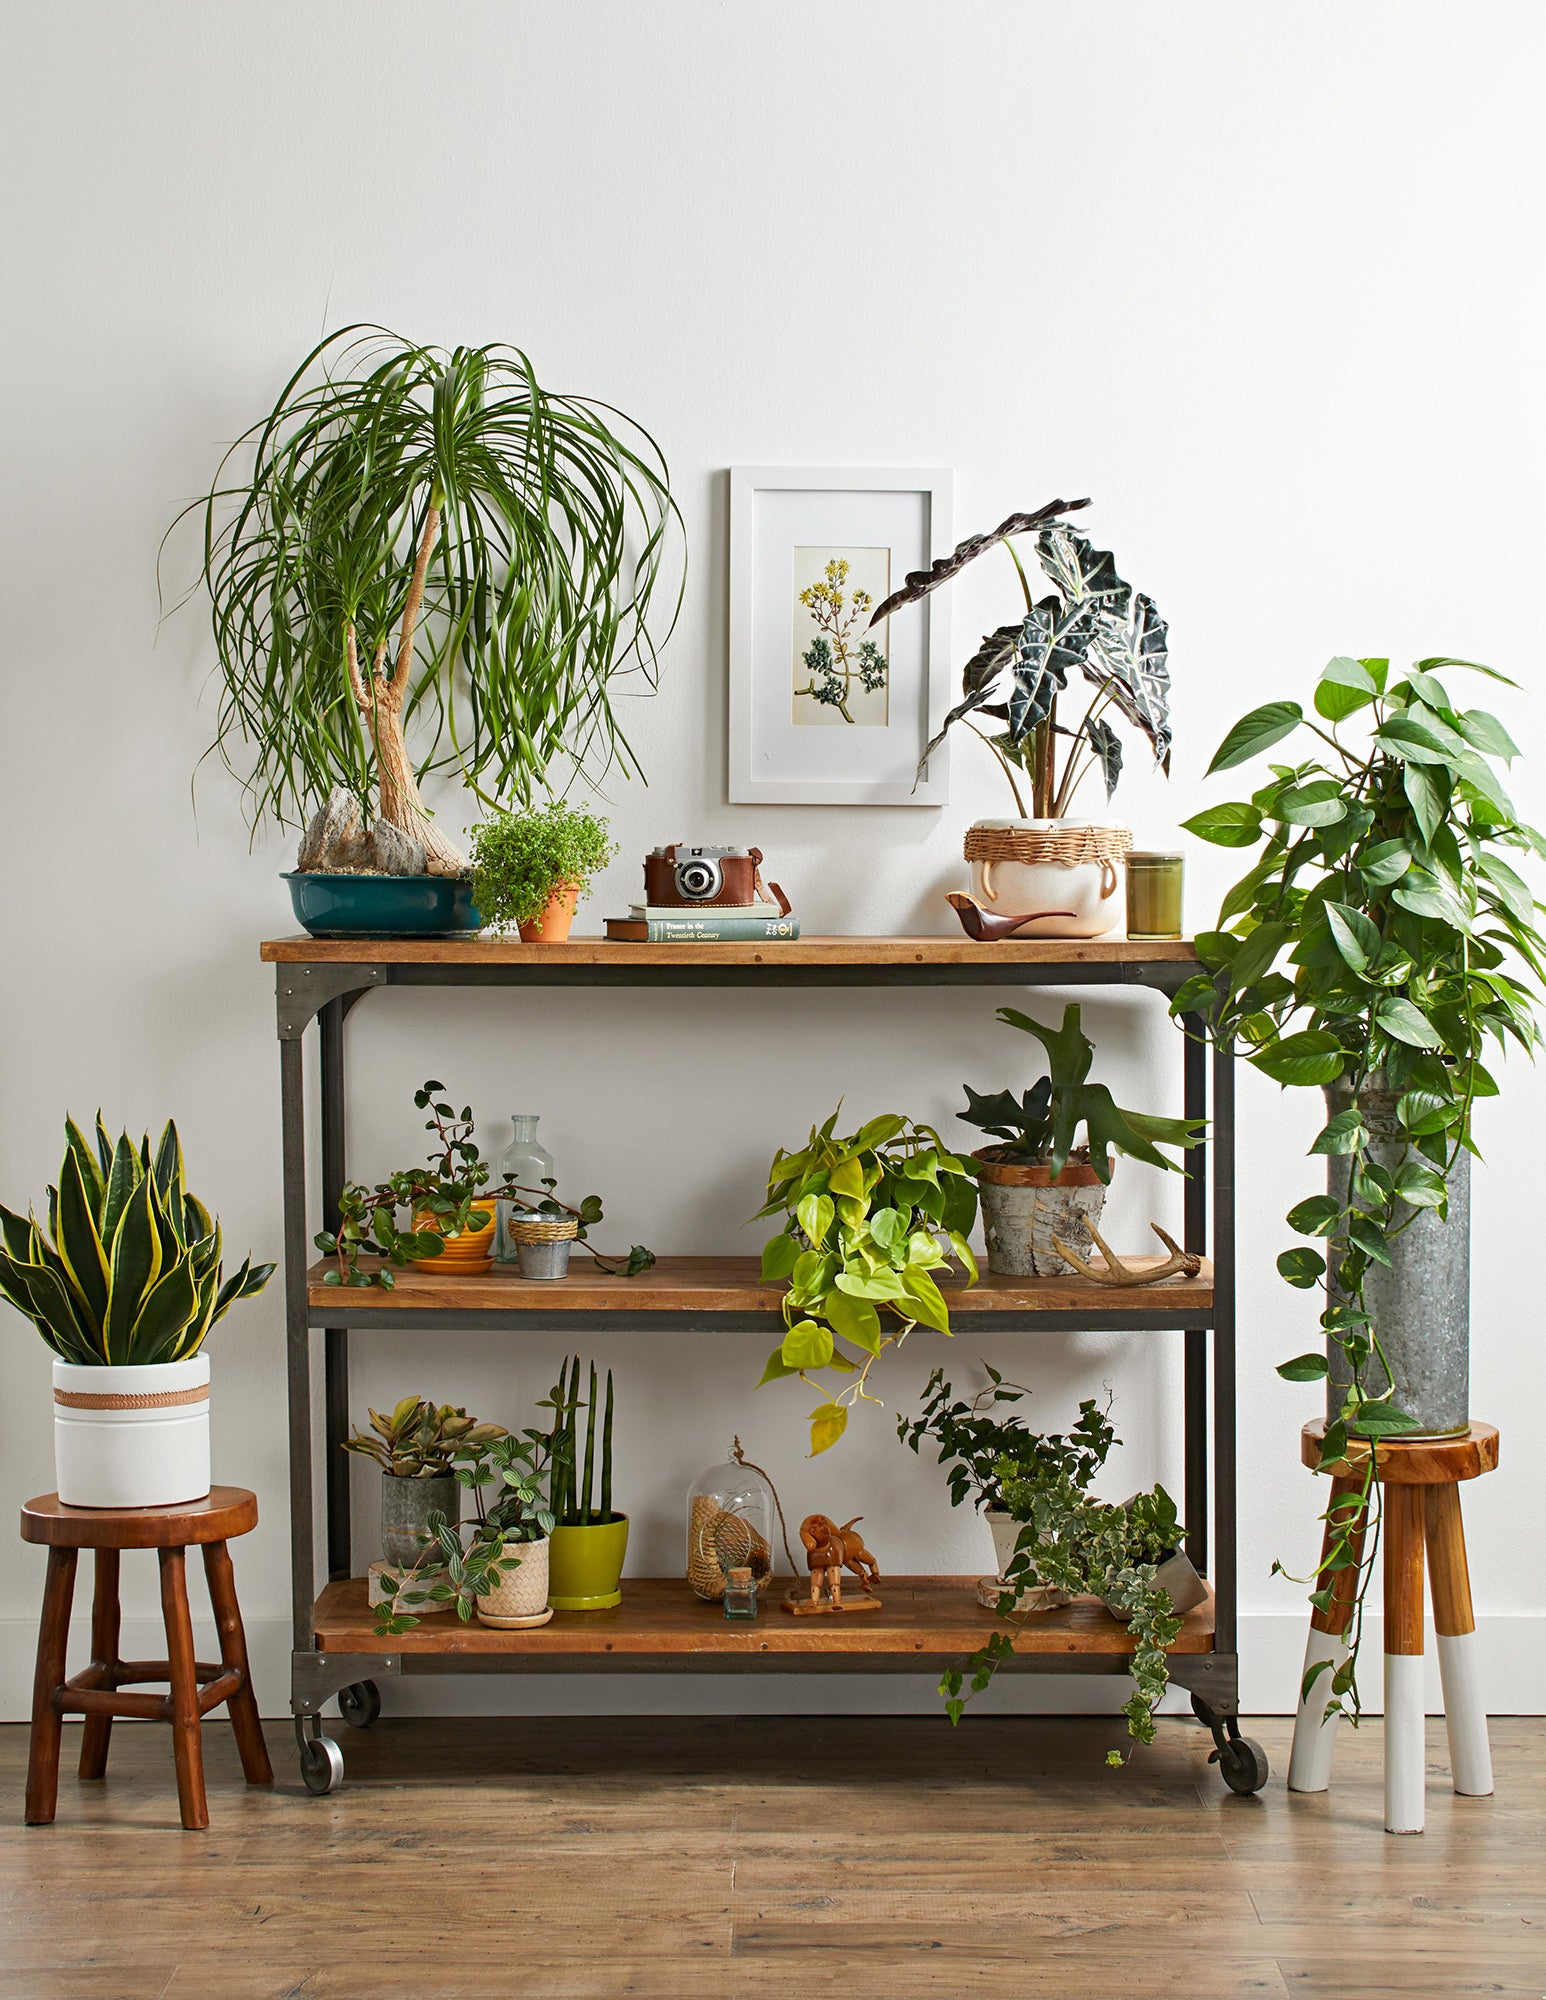 4 Simple Ways on How to Care for Your Plants While You're Away